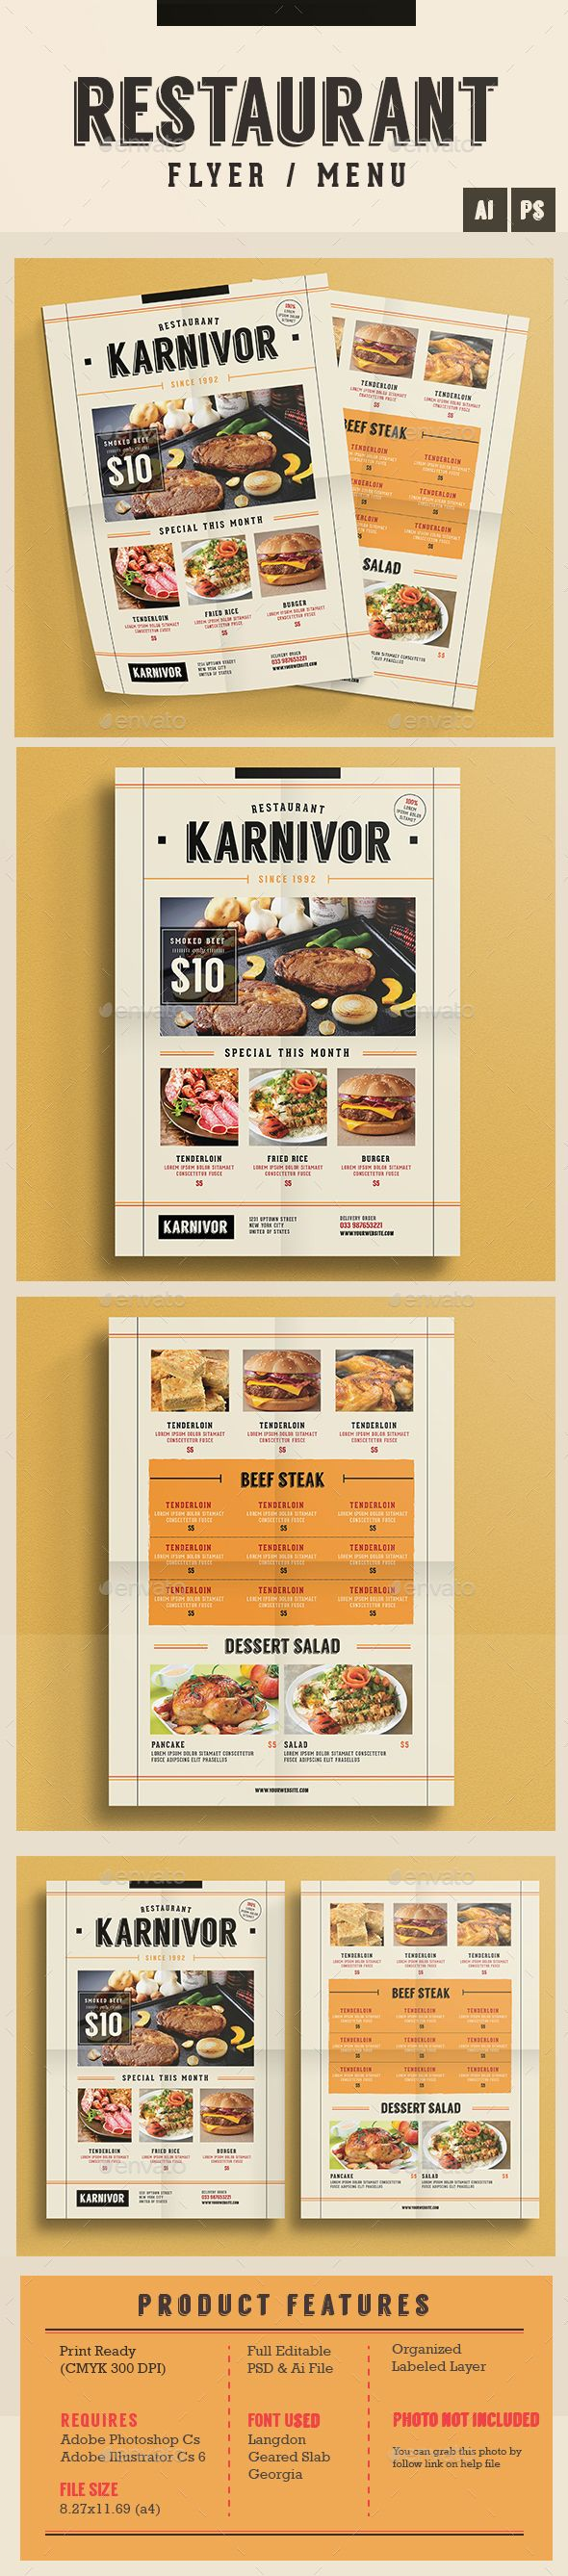 Restaurant flyer menu menu psd templates and restaurants for Restaurant menu psd